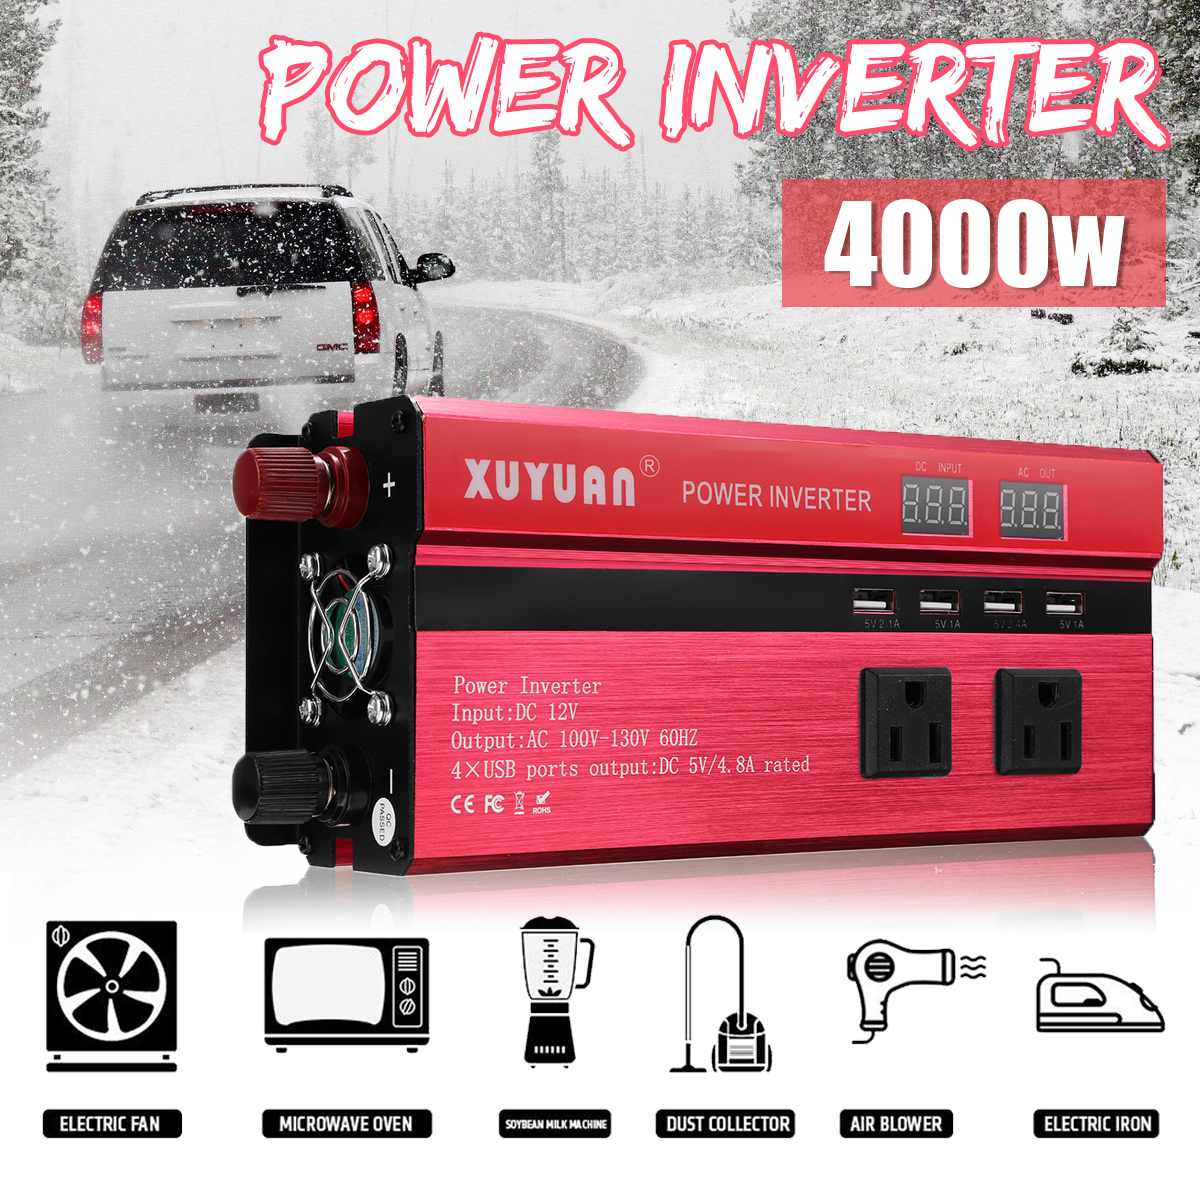 Sine Wave 5000W Car Inverter DC 12V/24V To AC 110/220V Power Inverter Volts Converter Charger Inversor 12V 220V TransformerSine Wave 5000W Car Inverter DC 12V/24V To AC 110/220V Power Inverter Volts Converter Charger Inversor 12V 220V Transformer